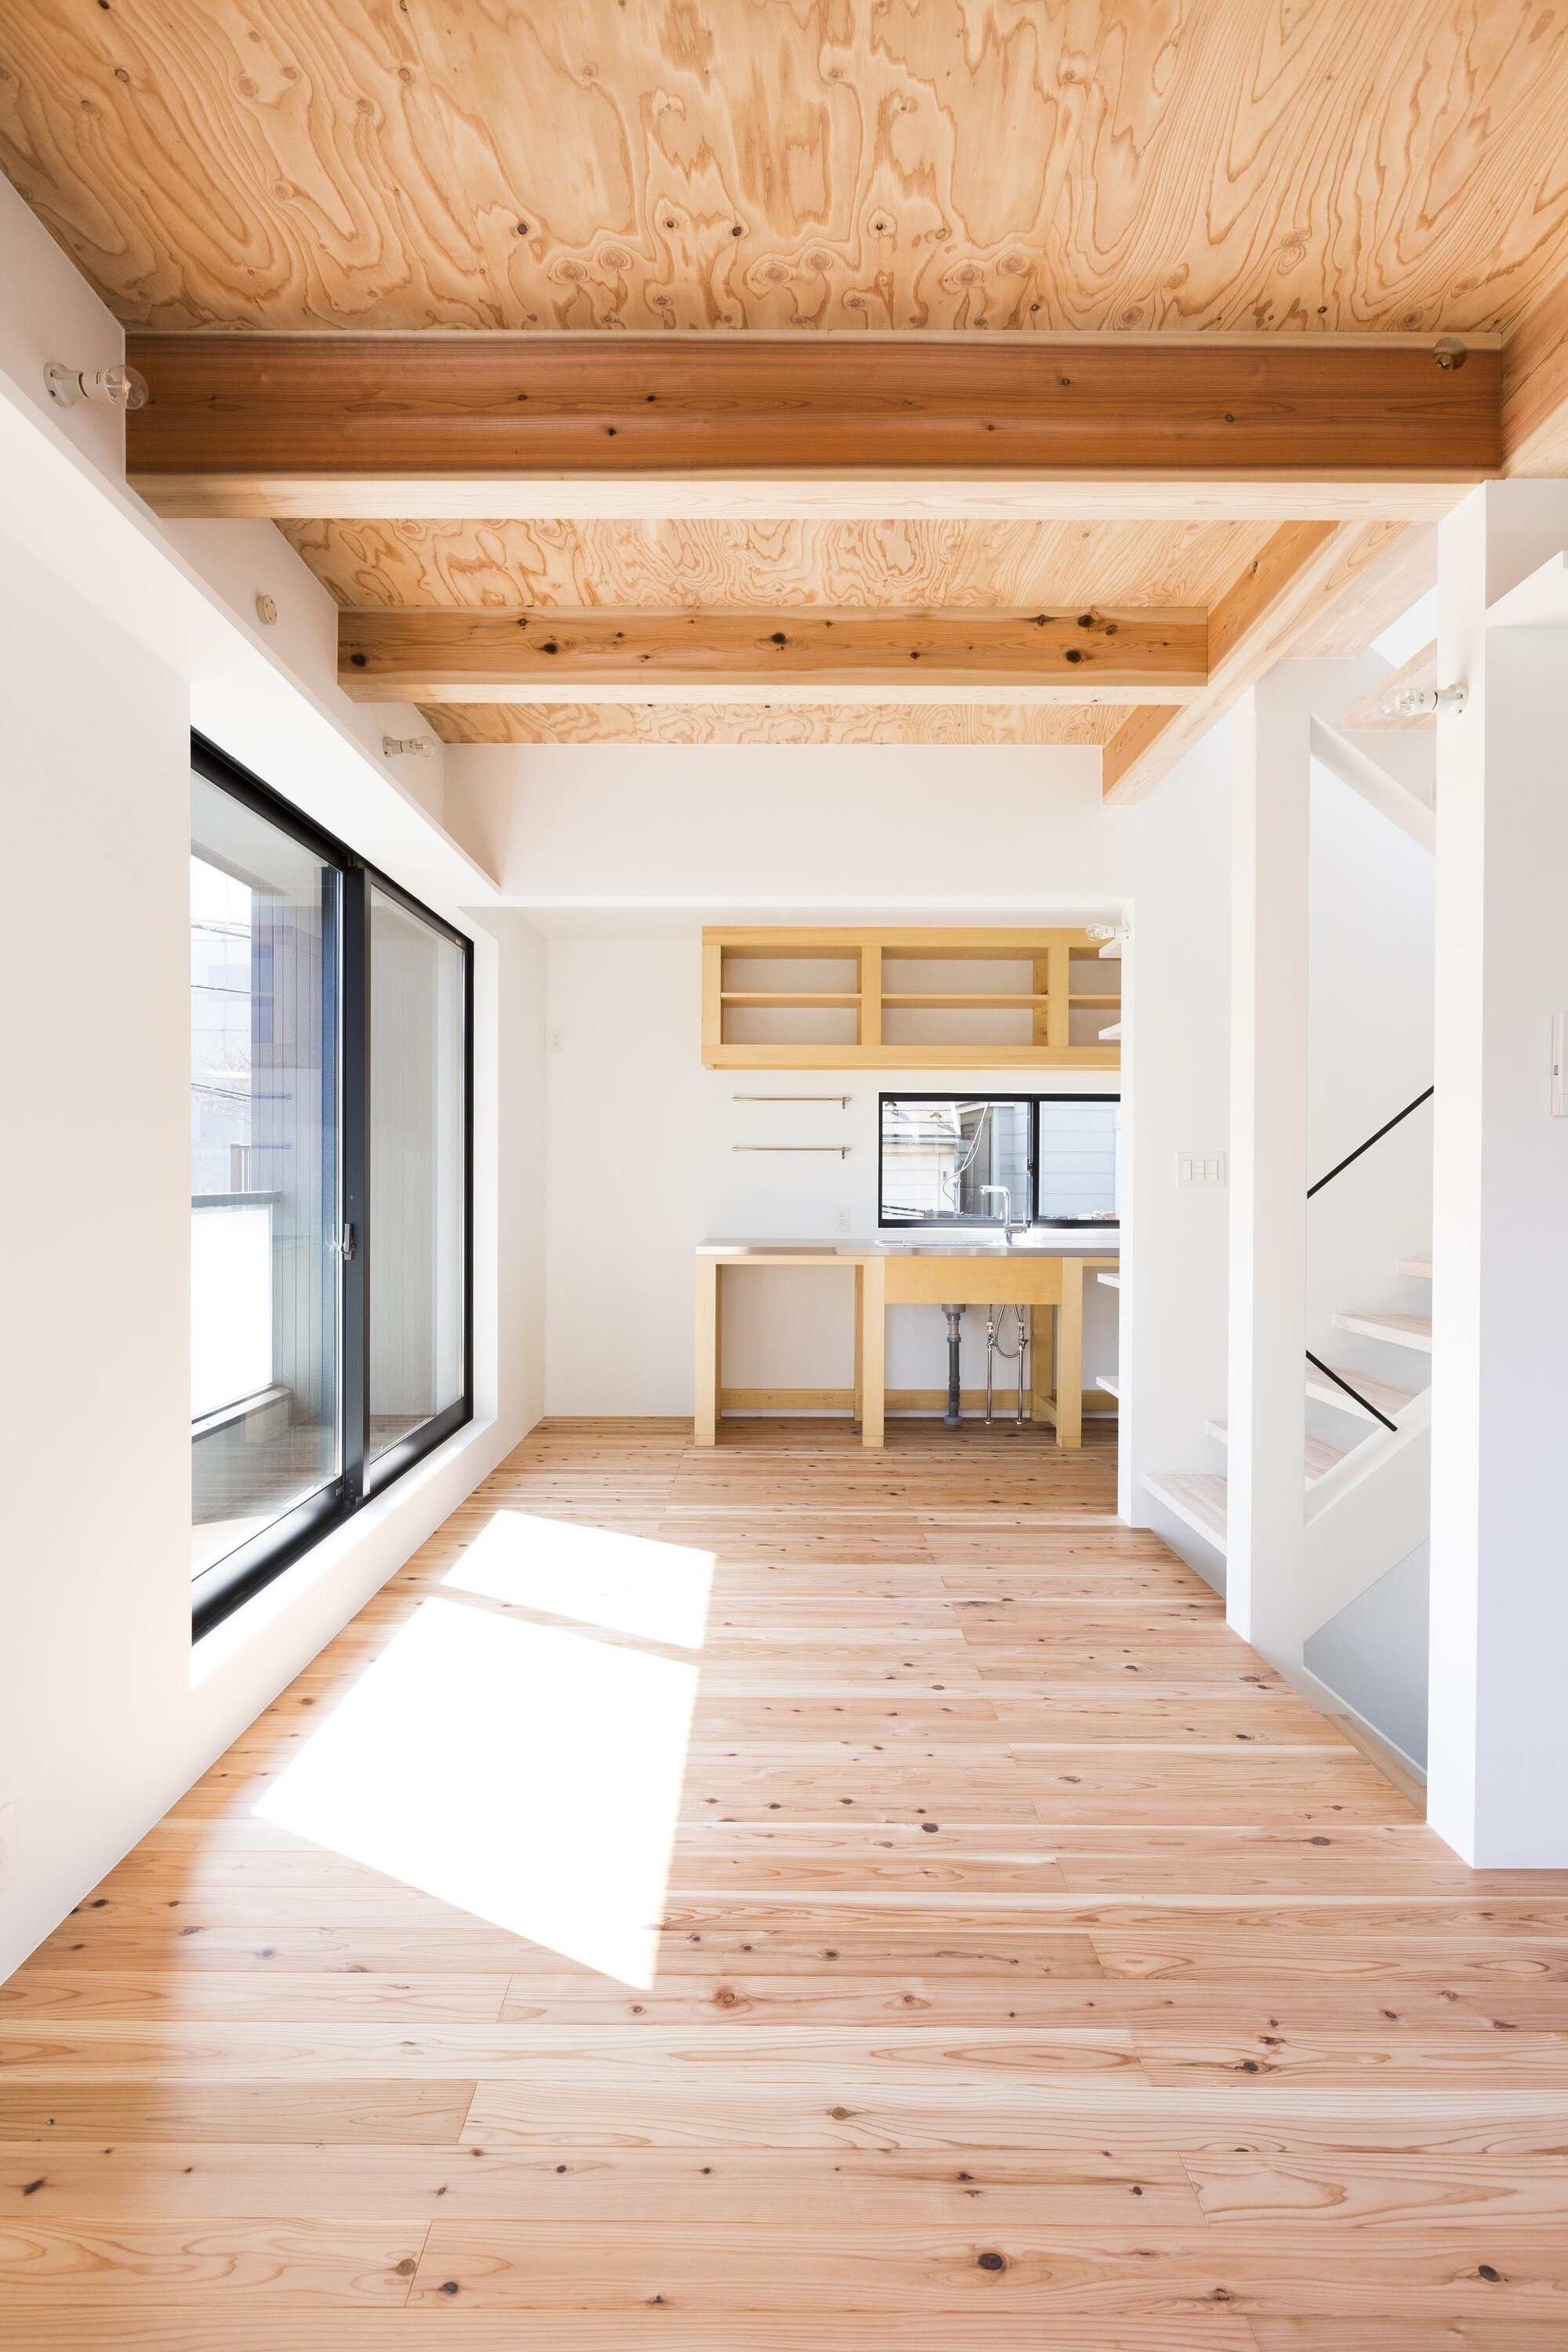 Hibarigaoka S house - Small Japanese House - Kaida Architecture Design Office - Japan - Living Area - Humble Homes